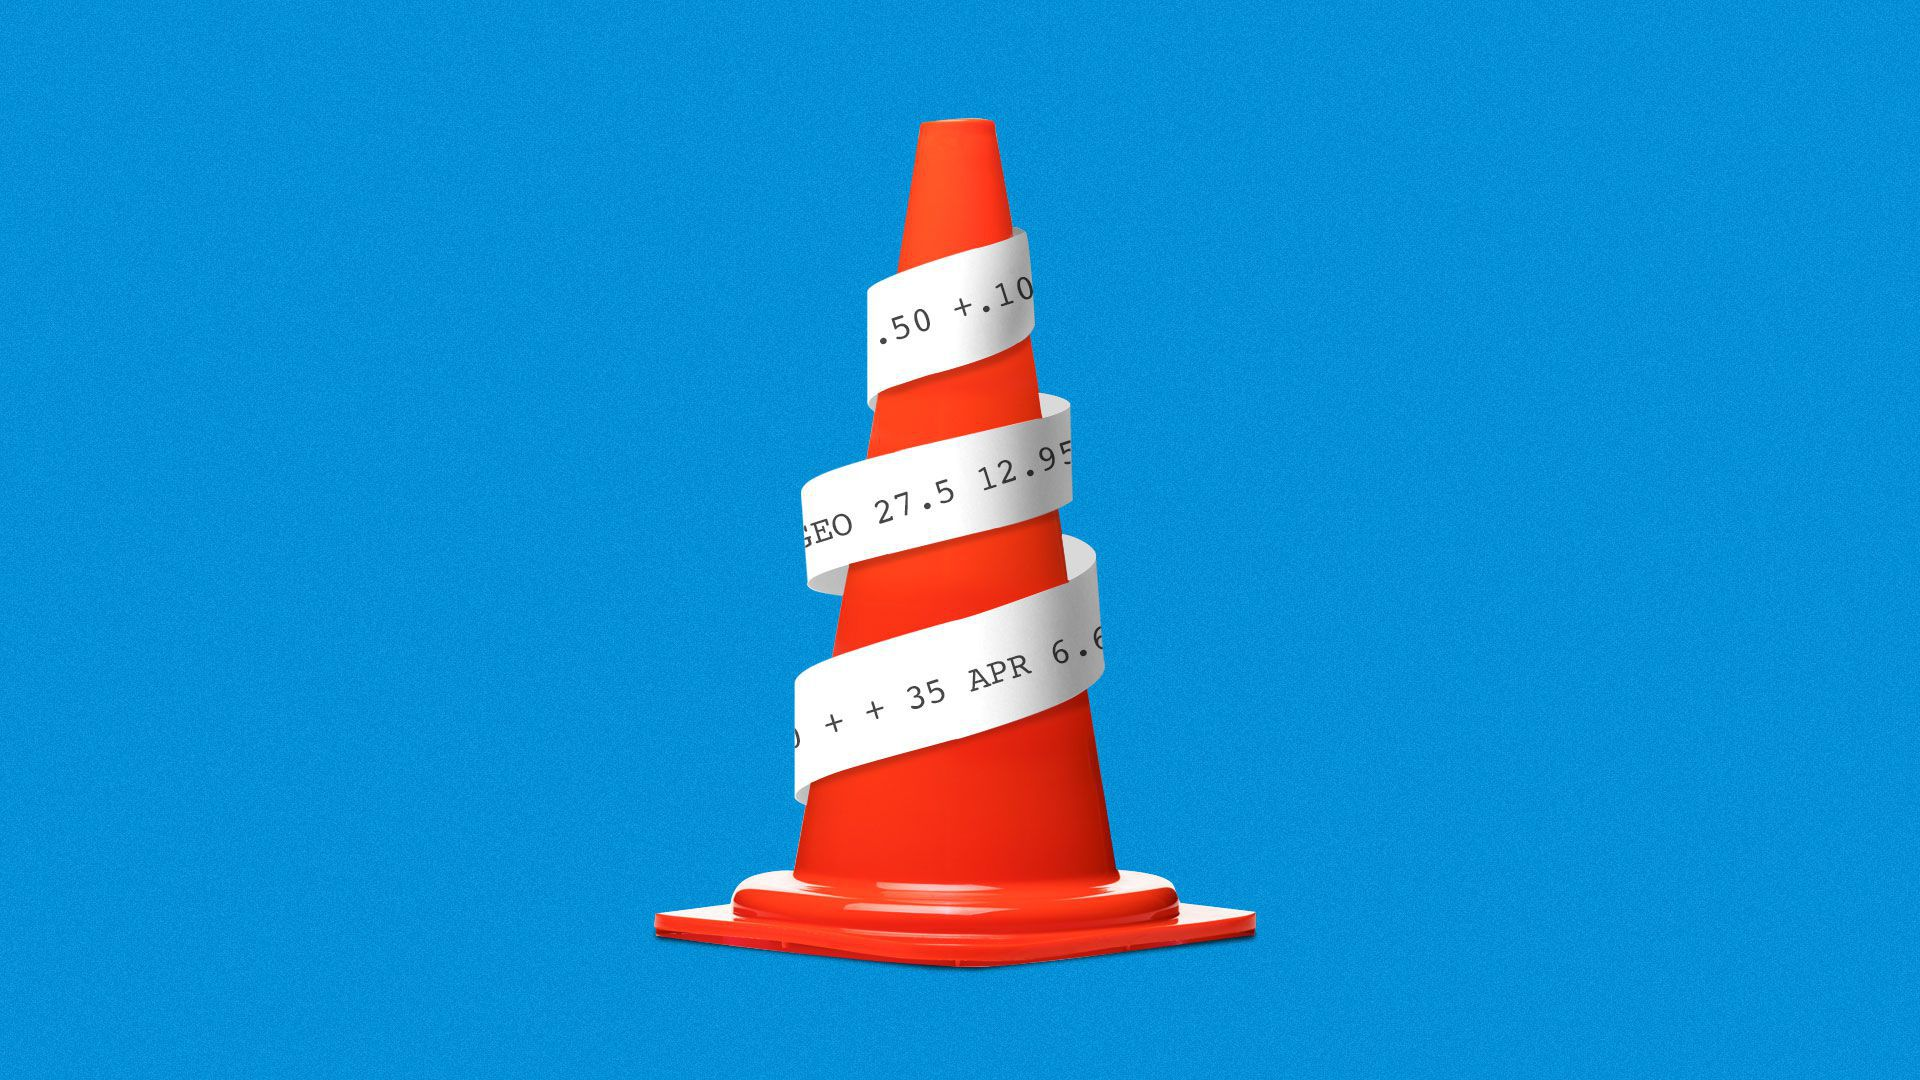 Illustration of a safety cone